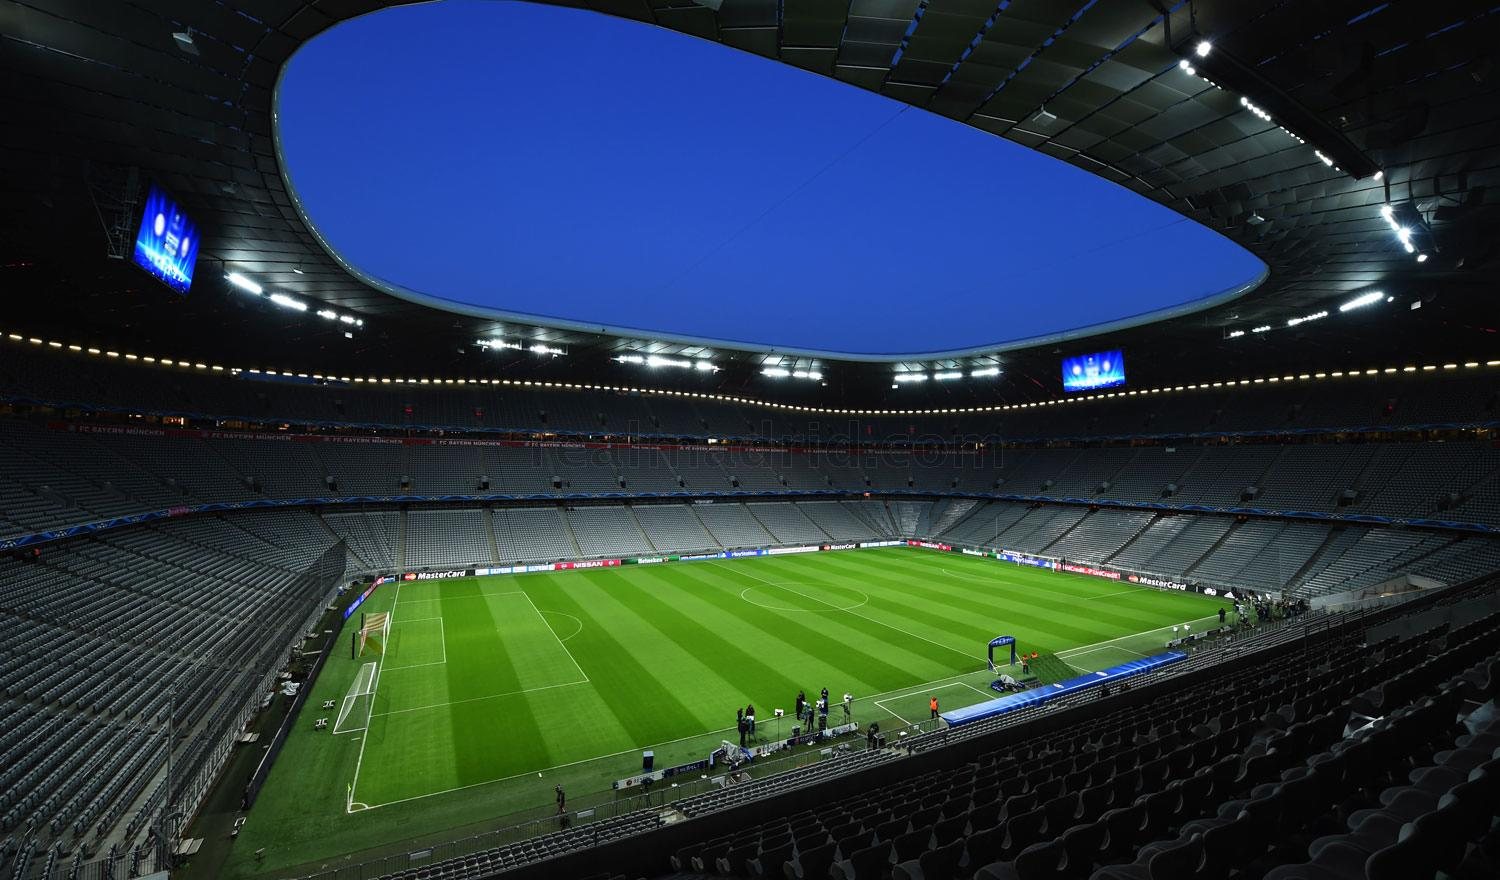 Real Madrid - Allianz Arena - 05-06-2015